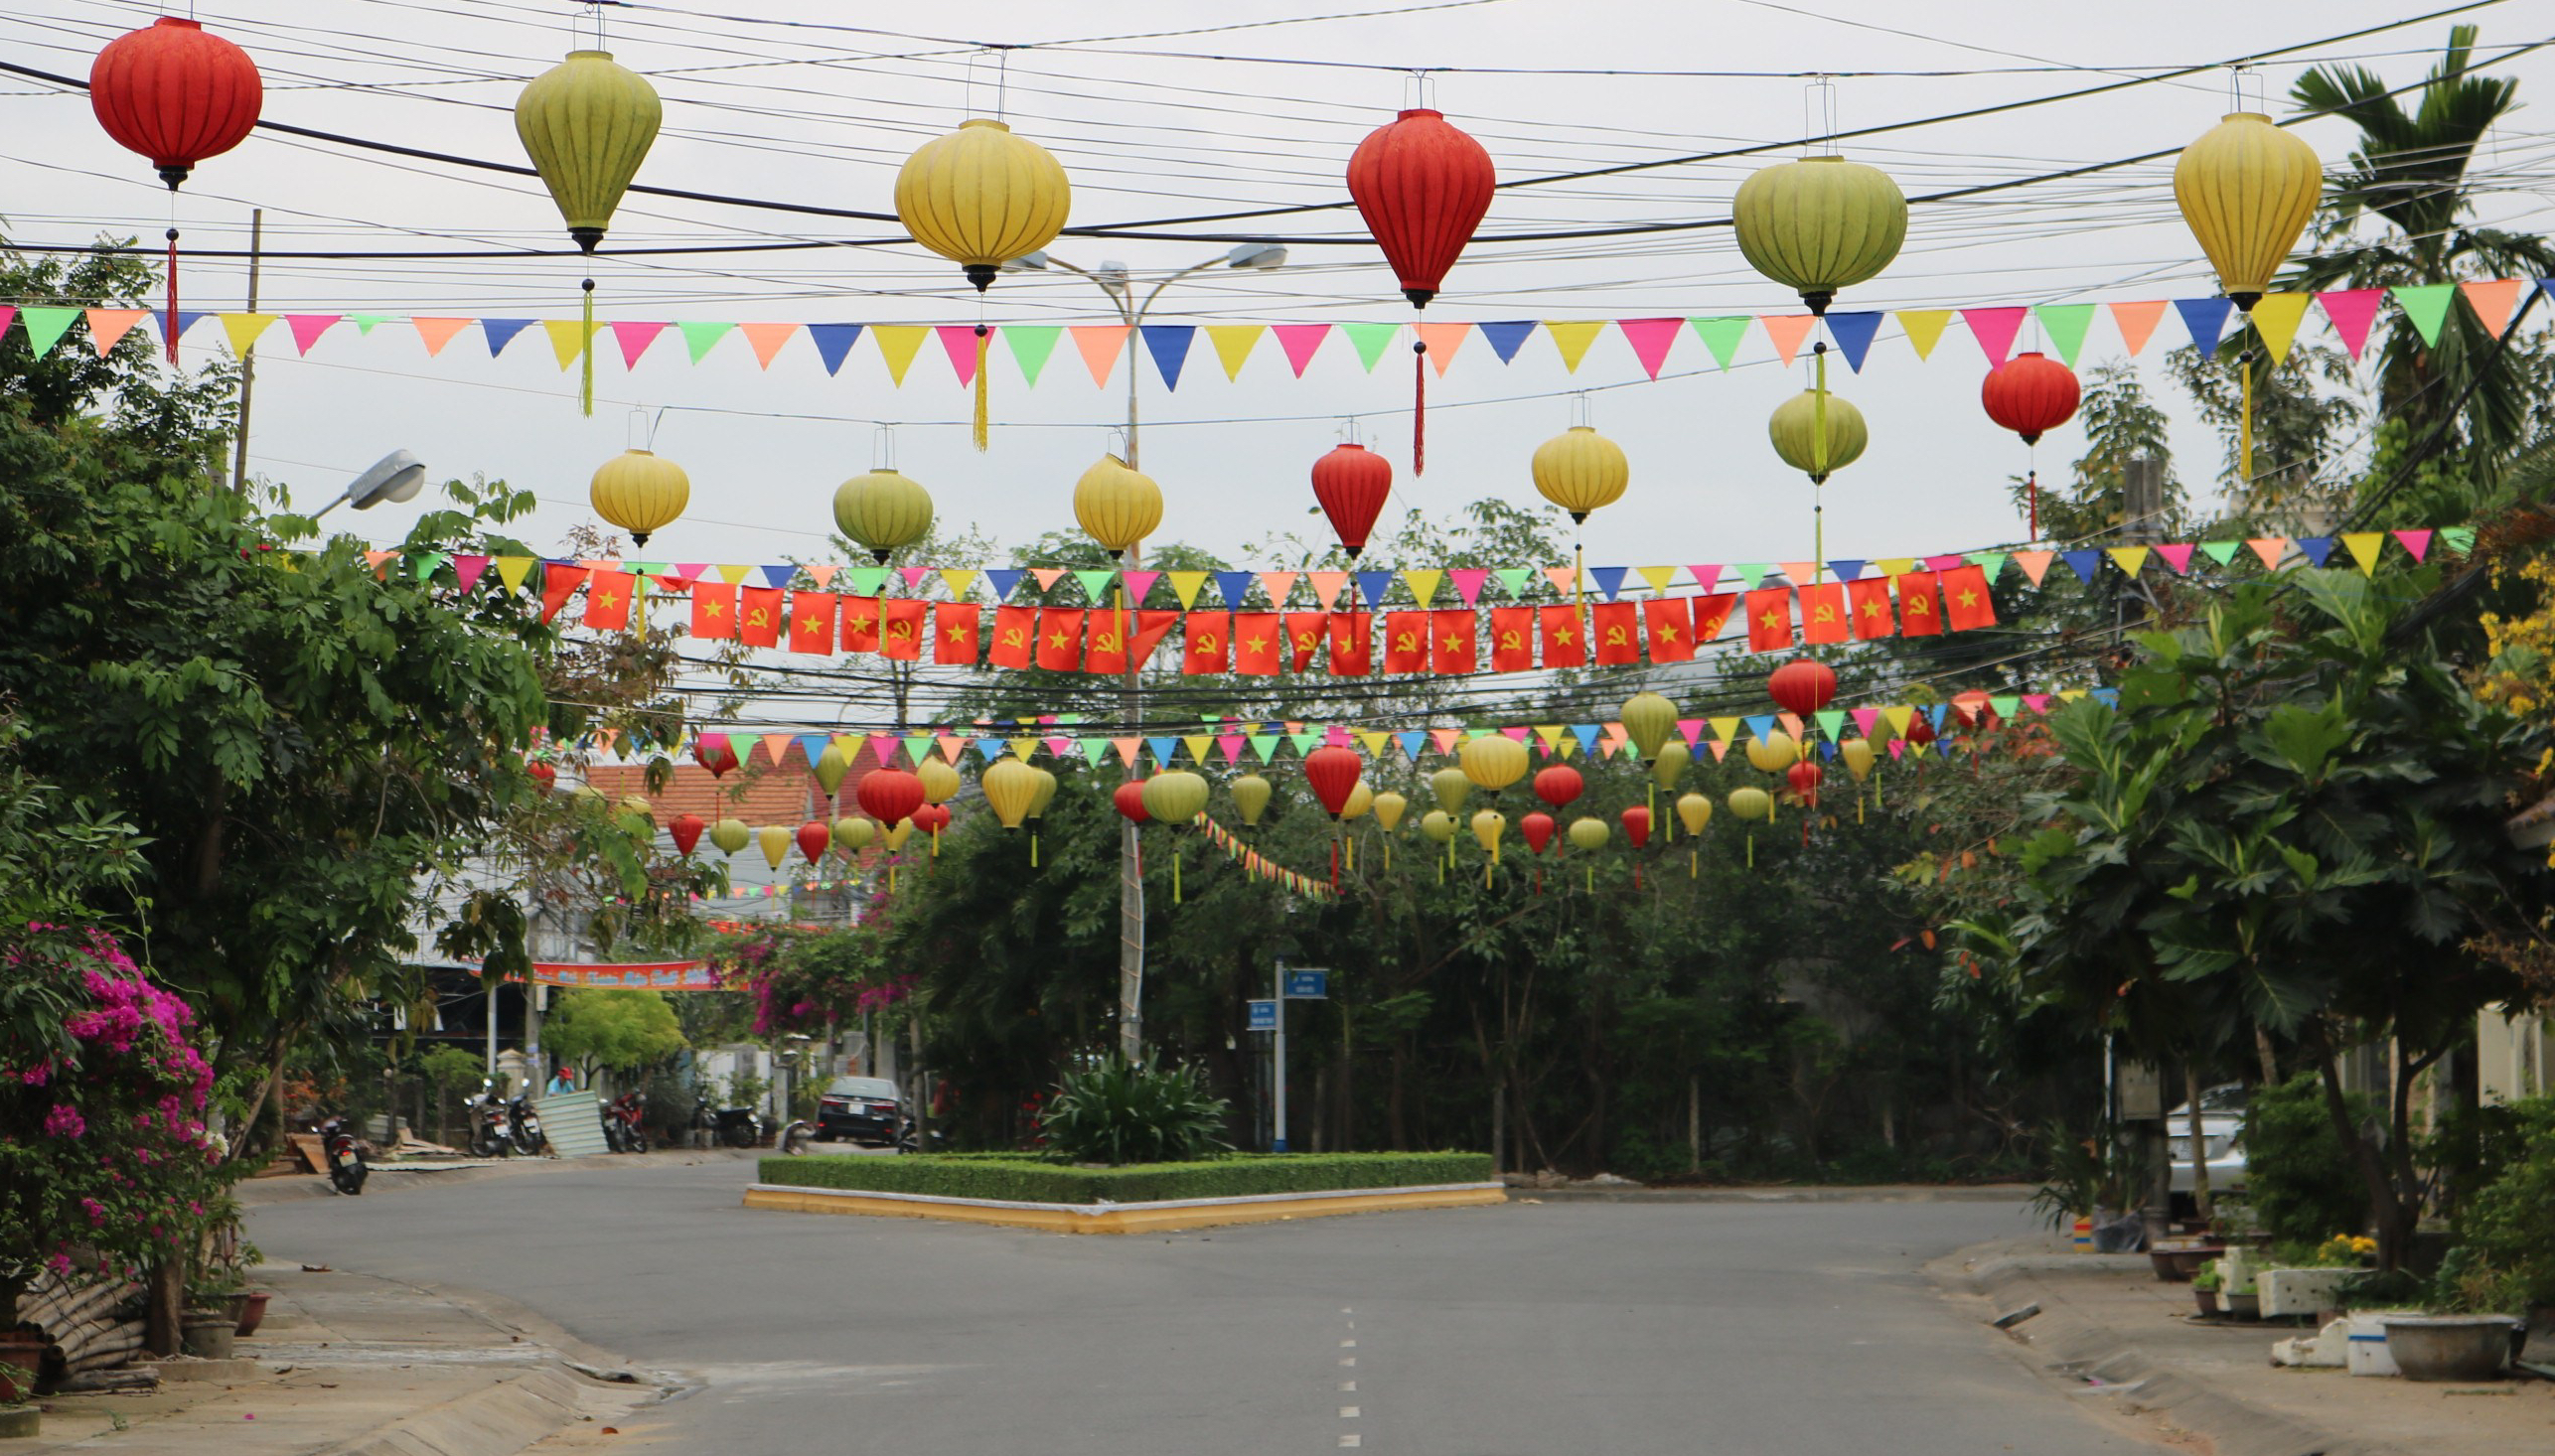 Hội An – City of Lanterns